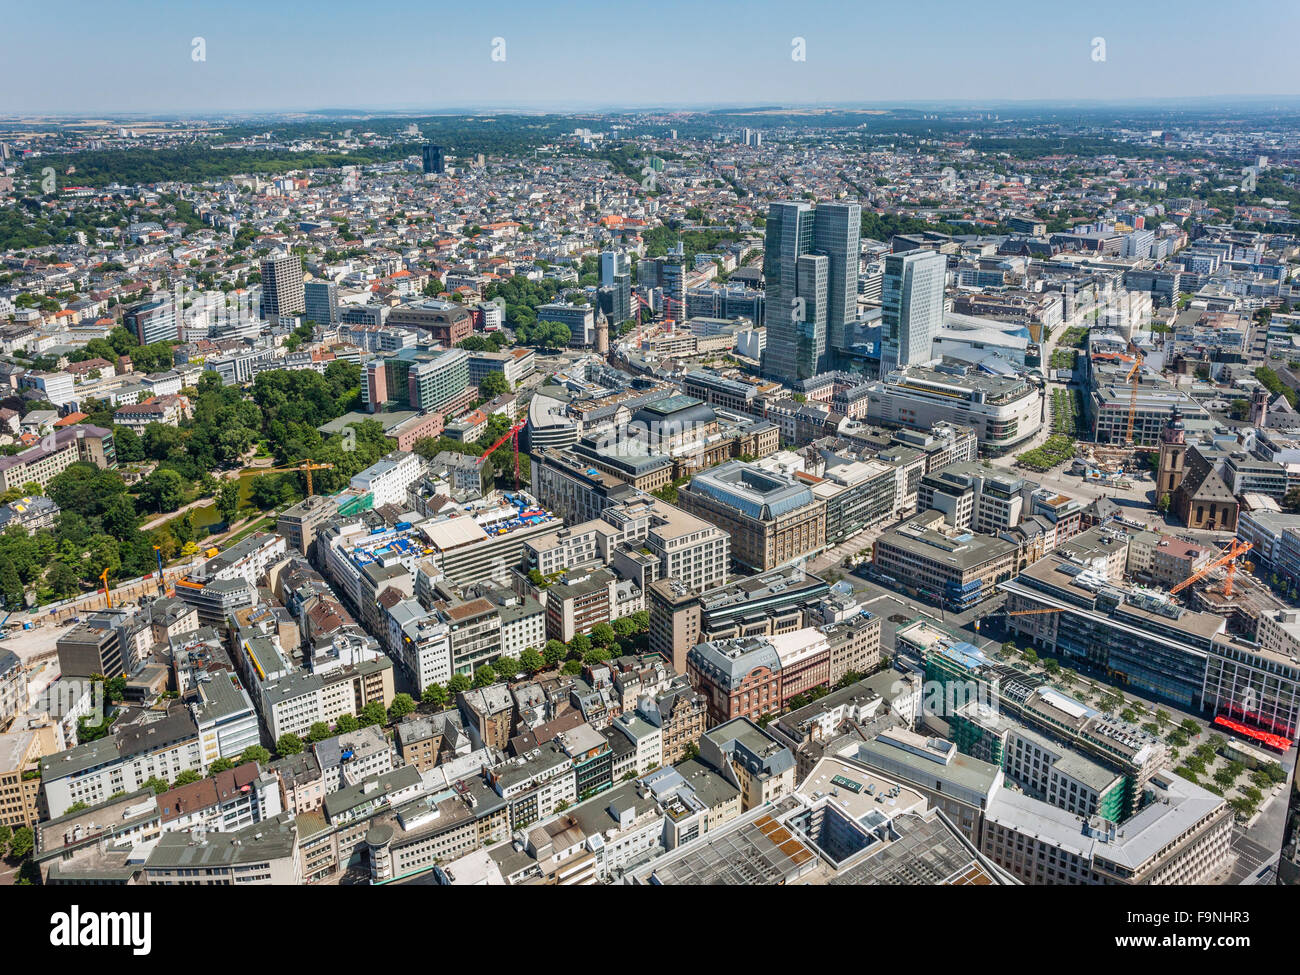 Germany, Hesse, Frankfurt am Main, aerial view of Frankfurt city centre with Goethestrasse, Zeil Galerie and Stock - Stock Image